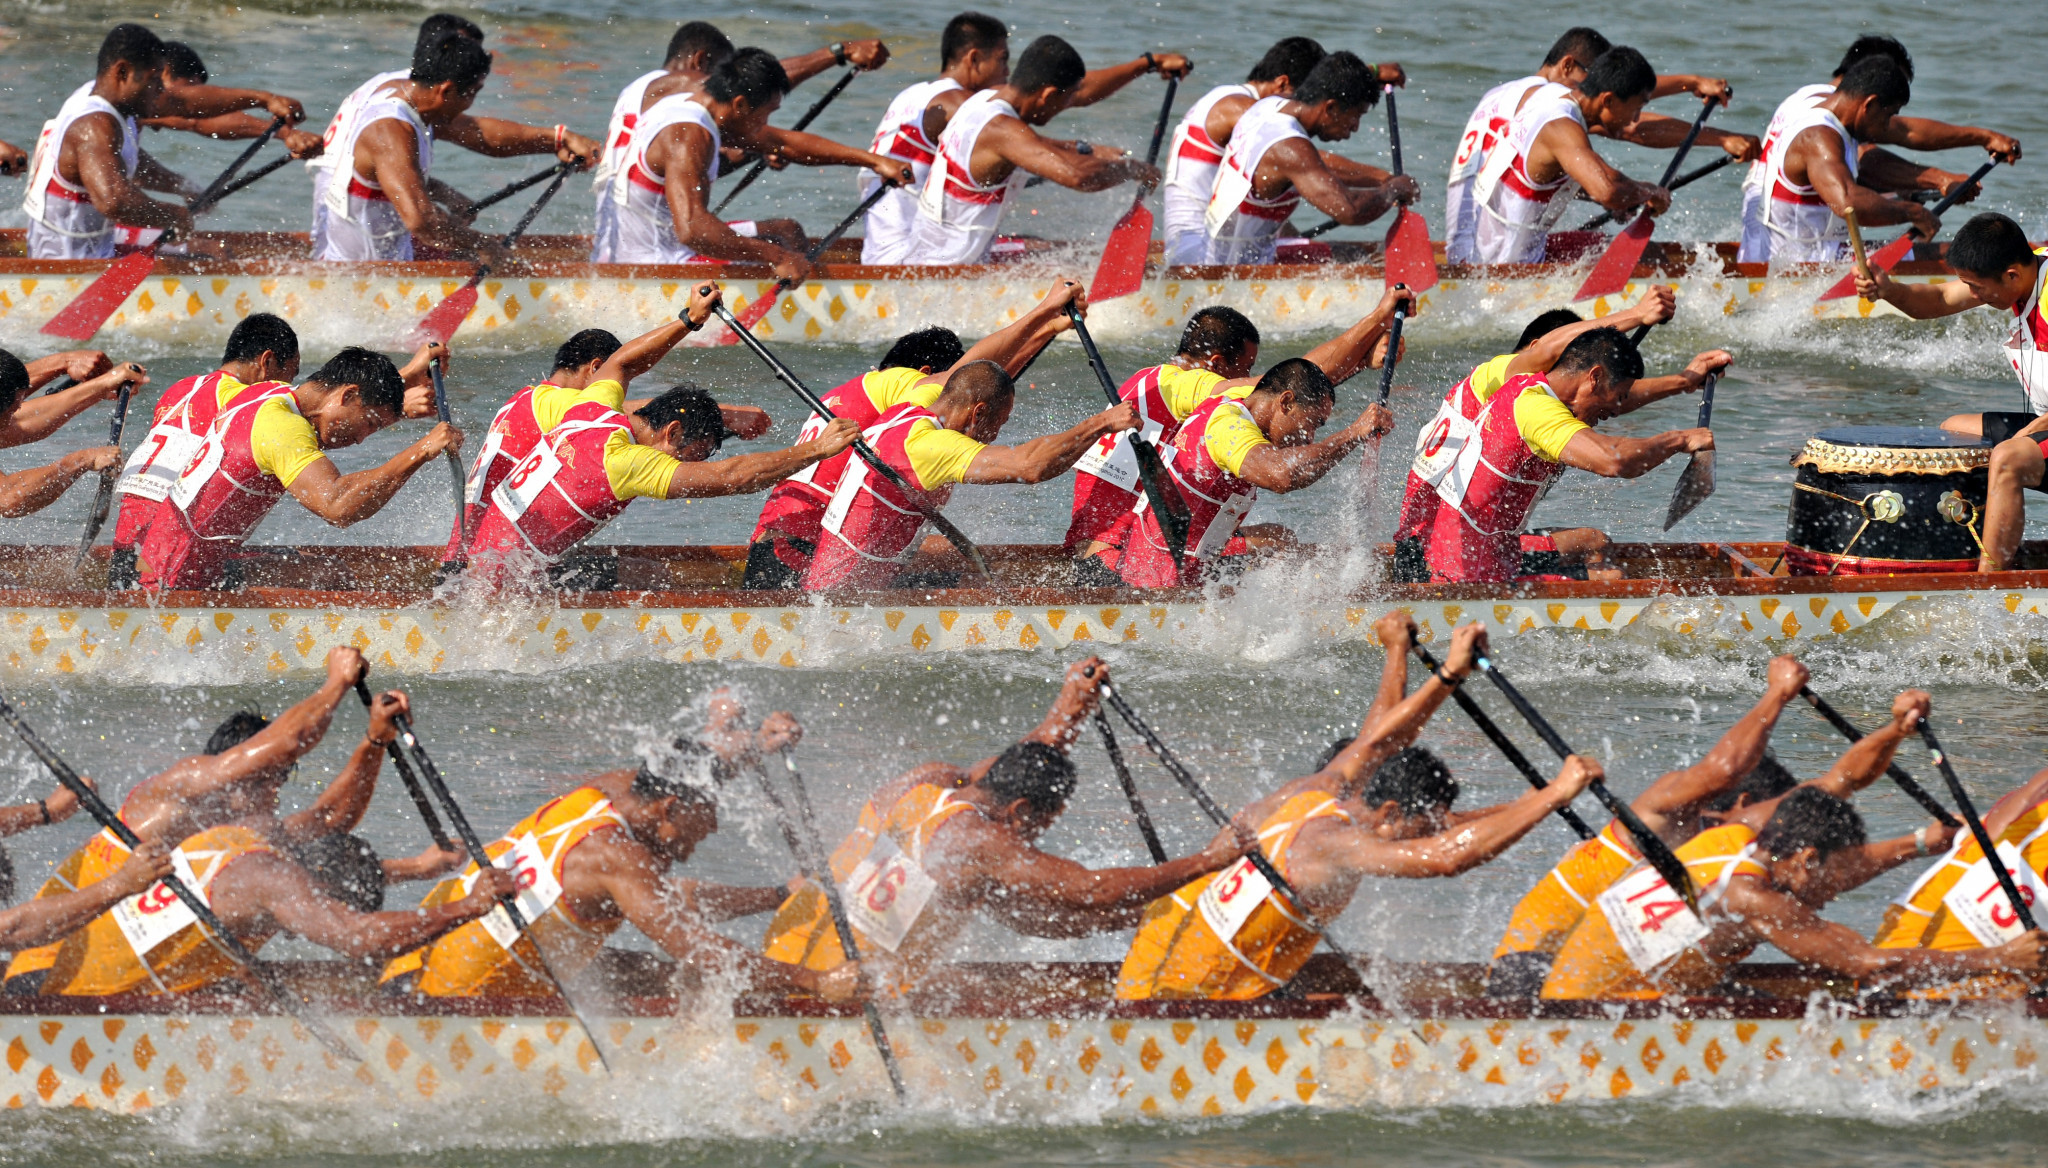 Dragon boat racing emerges as unlikely platform for inter Korean peace at Asian Games